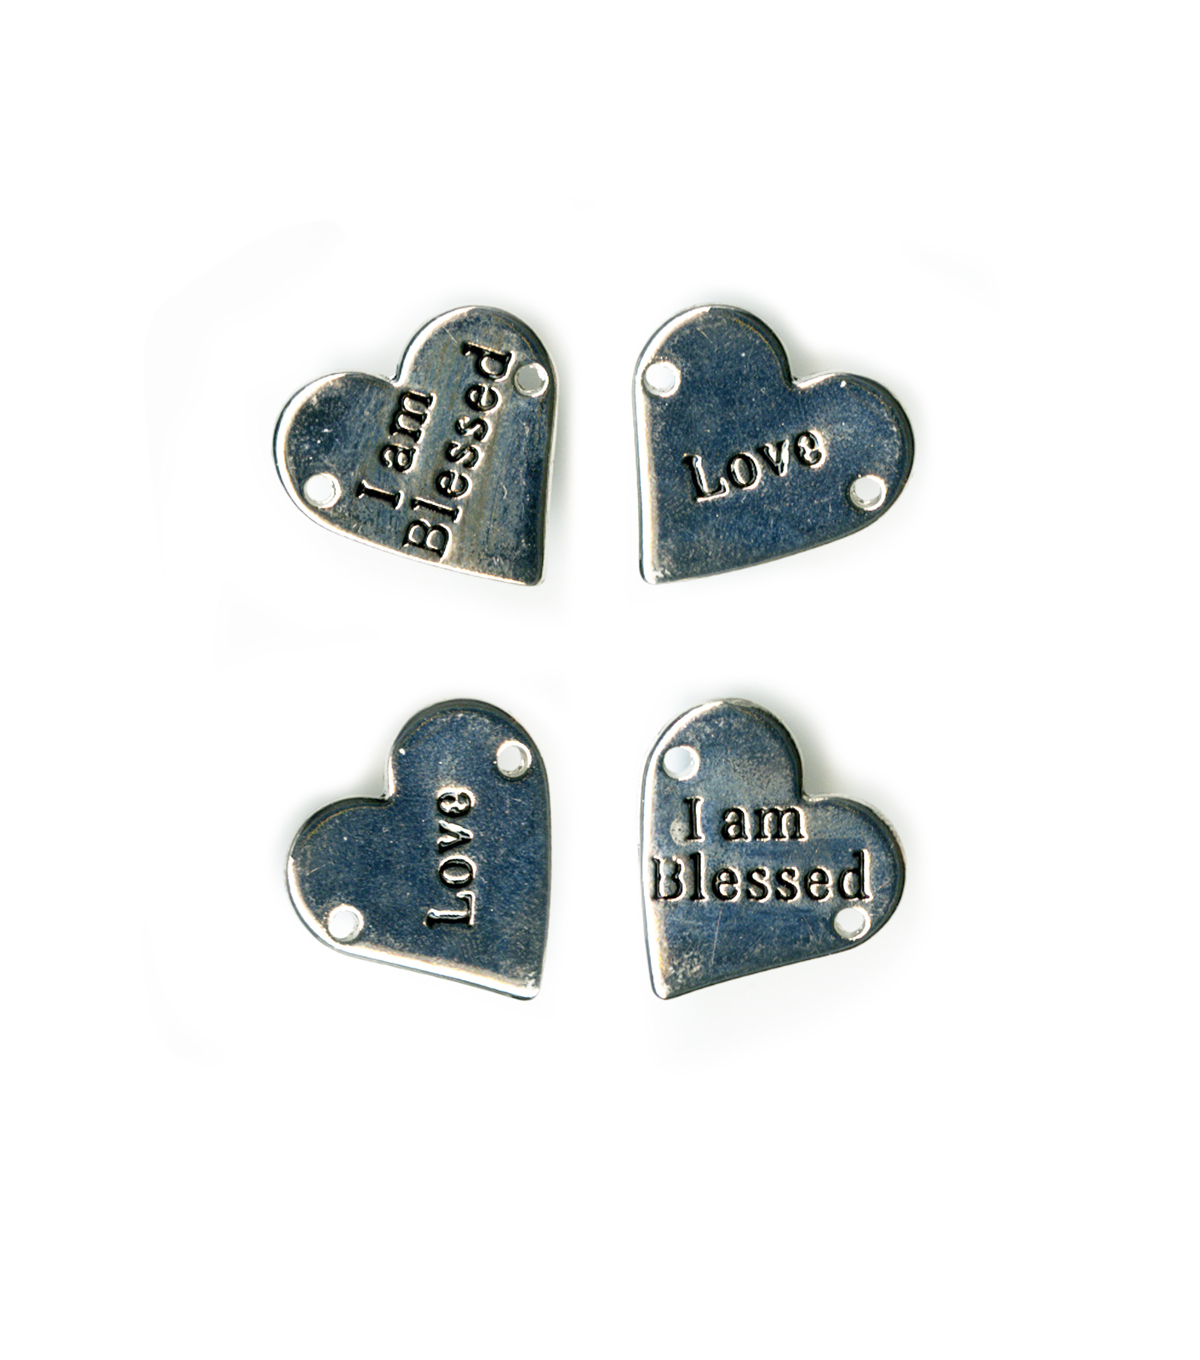 Blue Moon Beads Metal Connector 21mm Heart, I am Blessed, Love, Silver